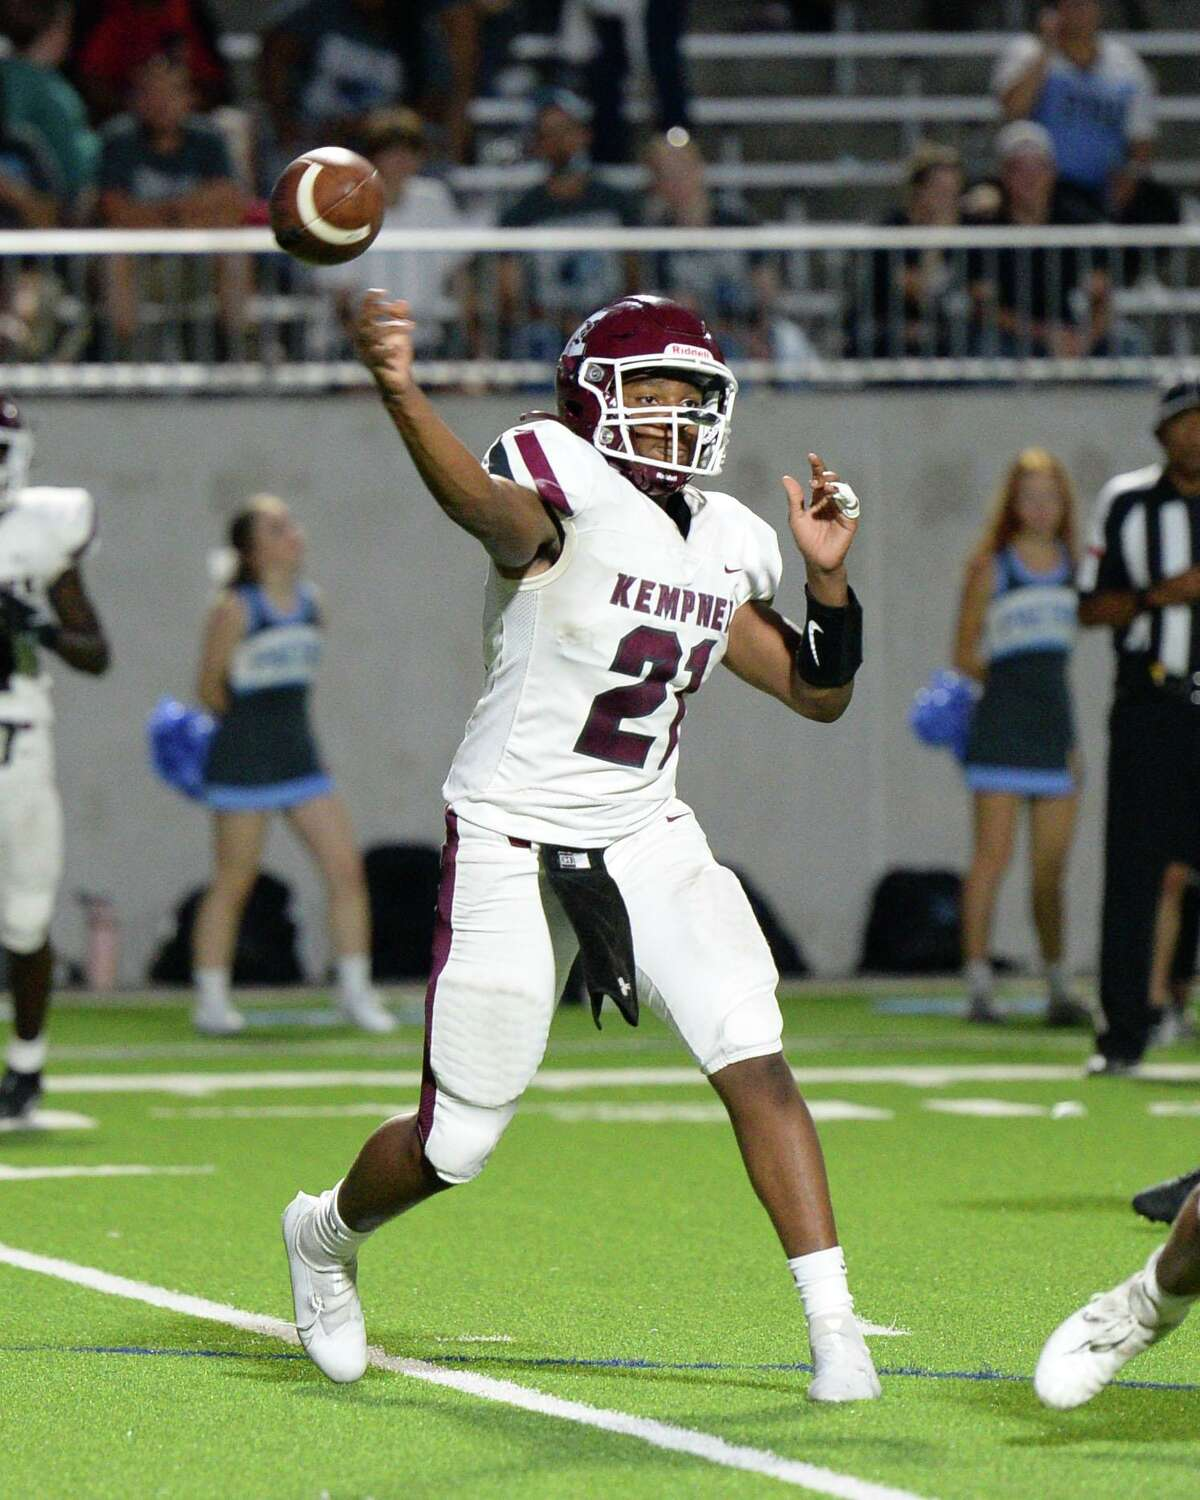 Javon Goss (21) of Kempner releases a pass during the third quarter of a District 10-5A-I football game between the Kempner Cougars and the Paetow Panthers on Saturday, September 18, 2021 at Legacy Stadium, Katy, TX.